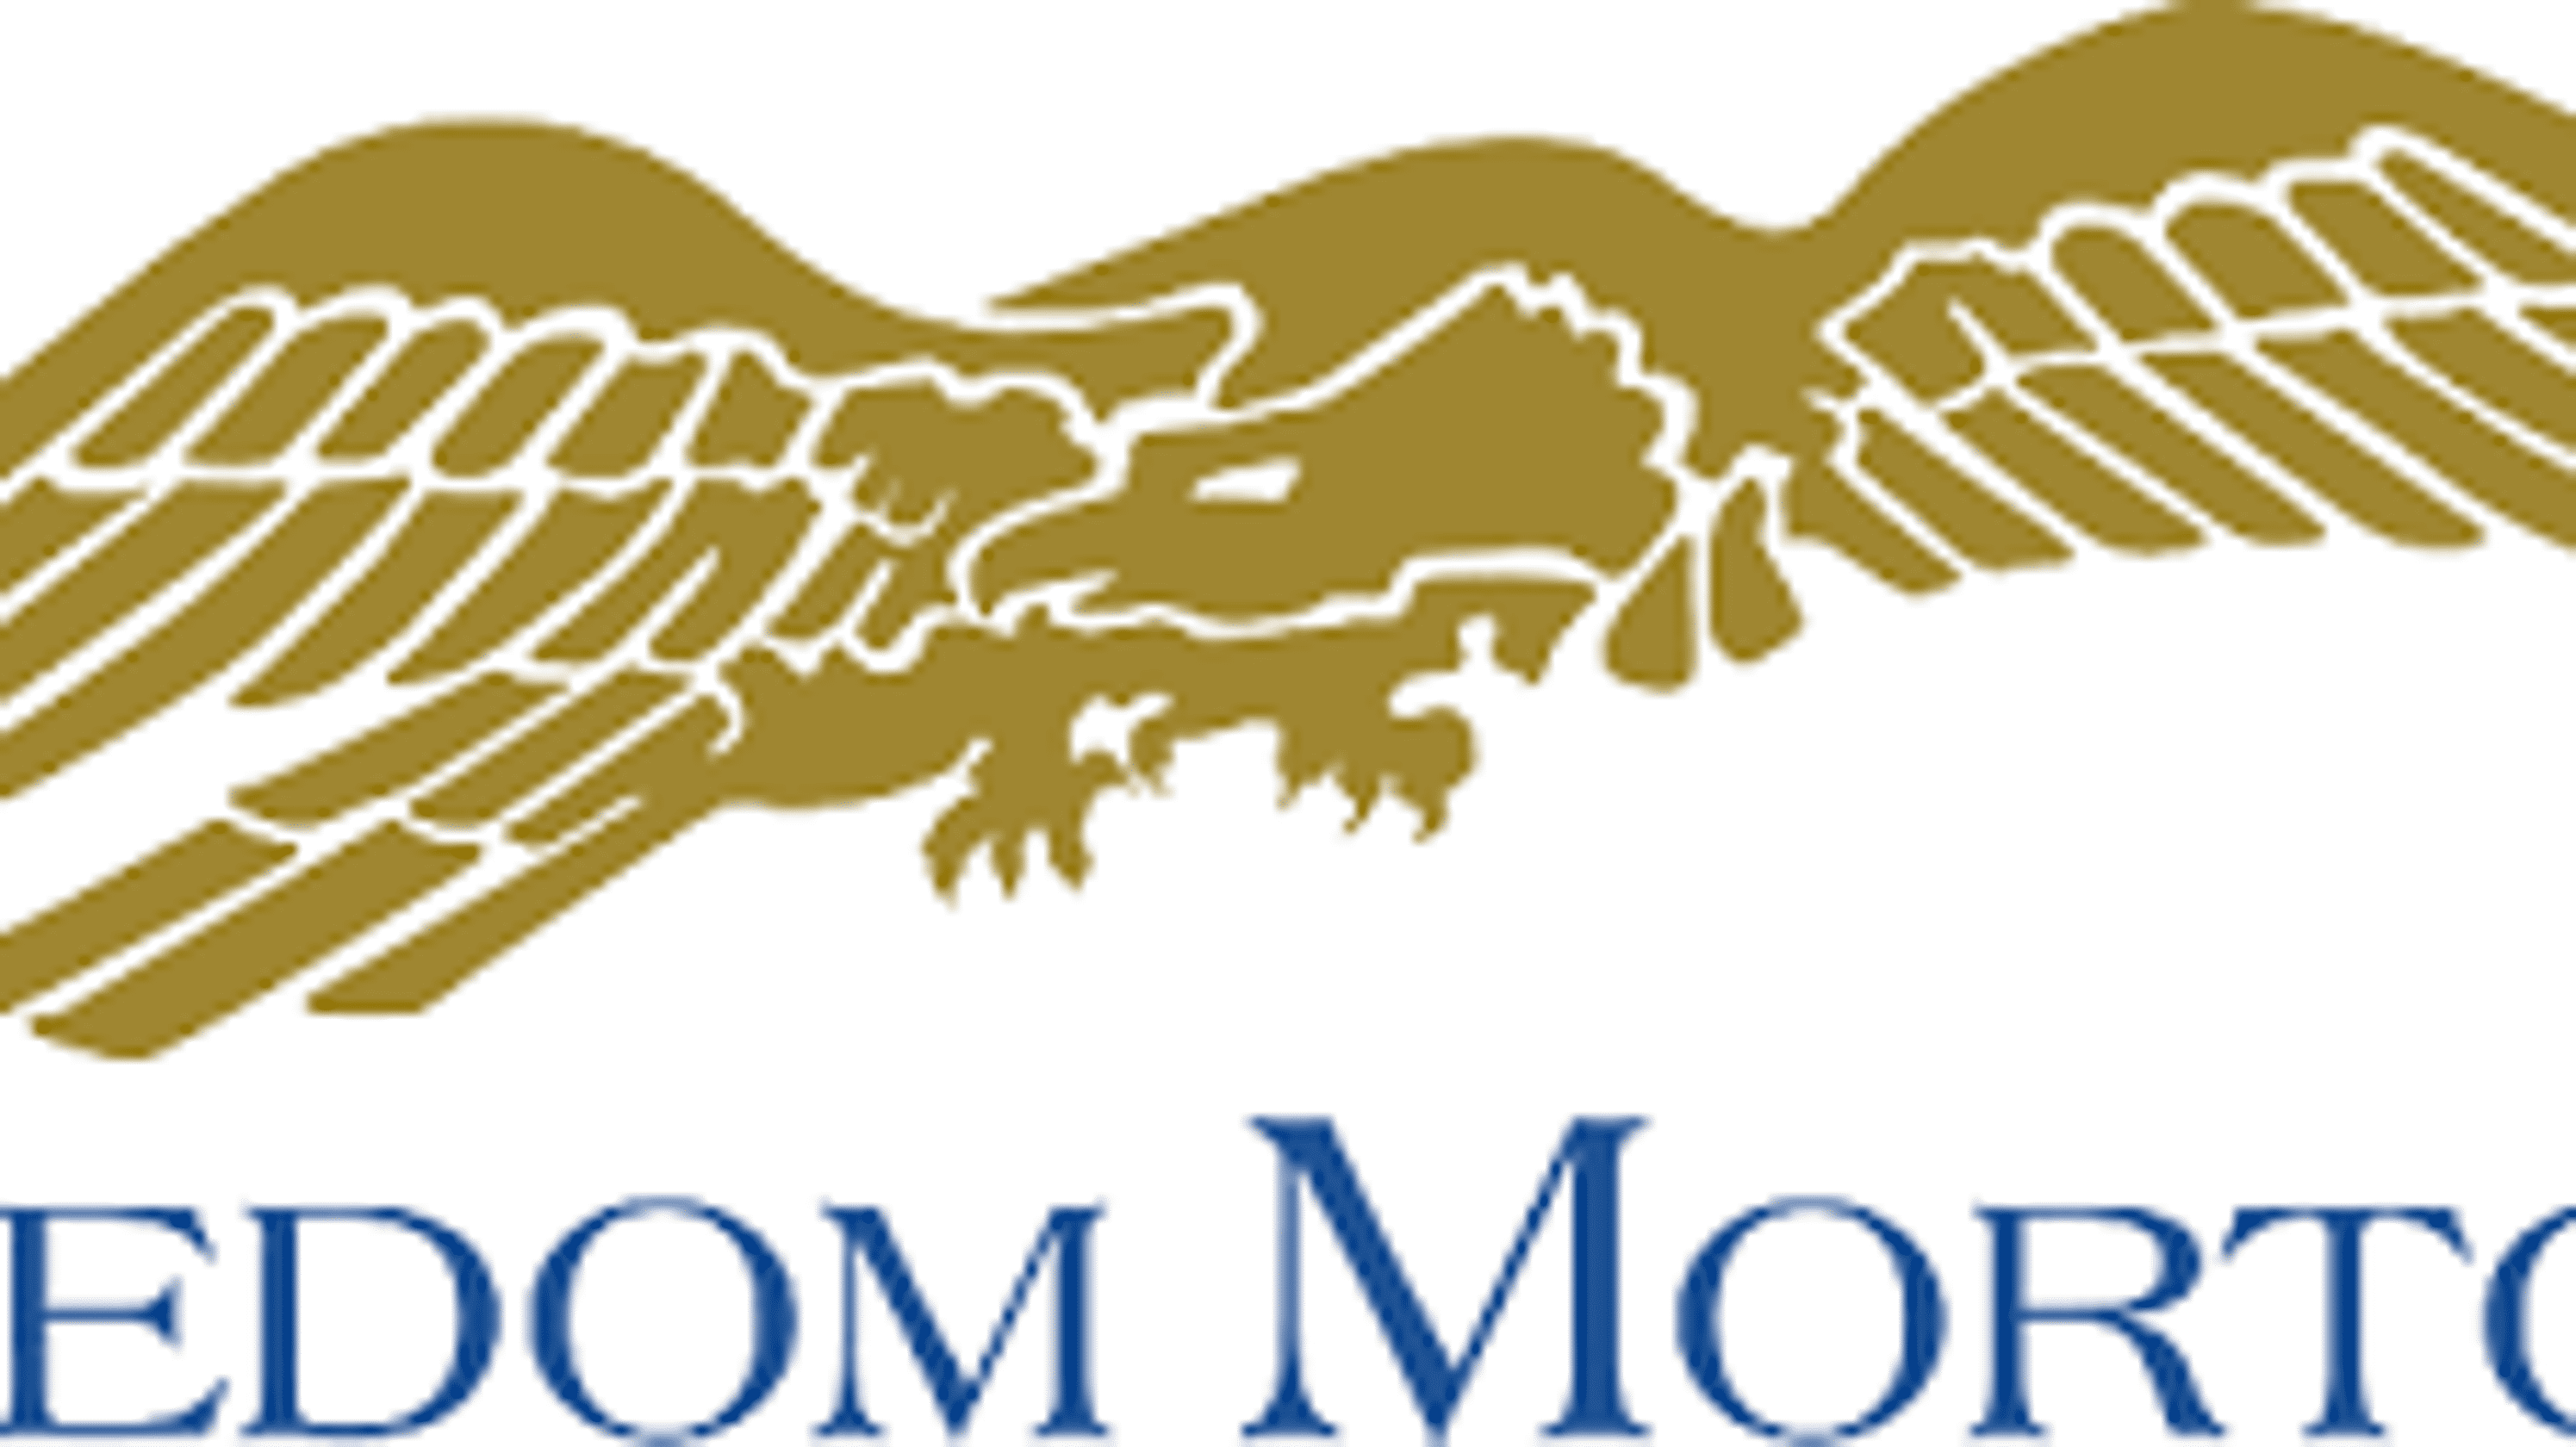 Freedom Mortgage Adding Jobs, Parking Spaces In Mount Laurel